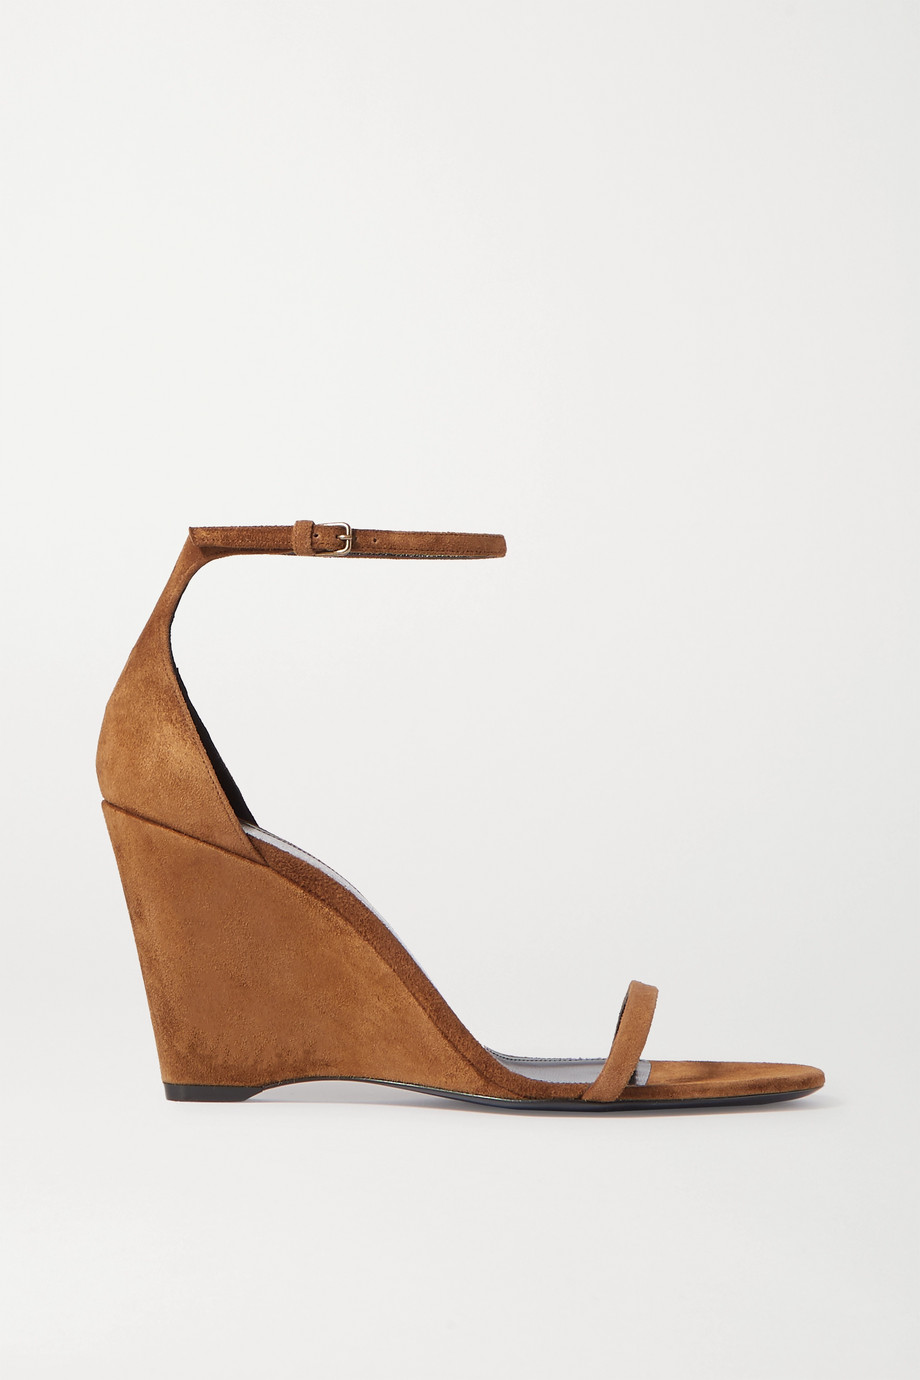 SAINT LAURENT Bianca suede wedge sandals